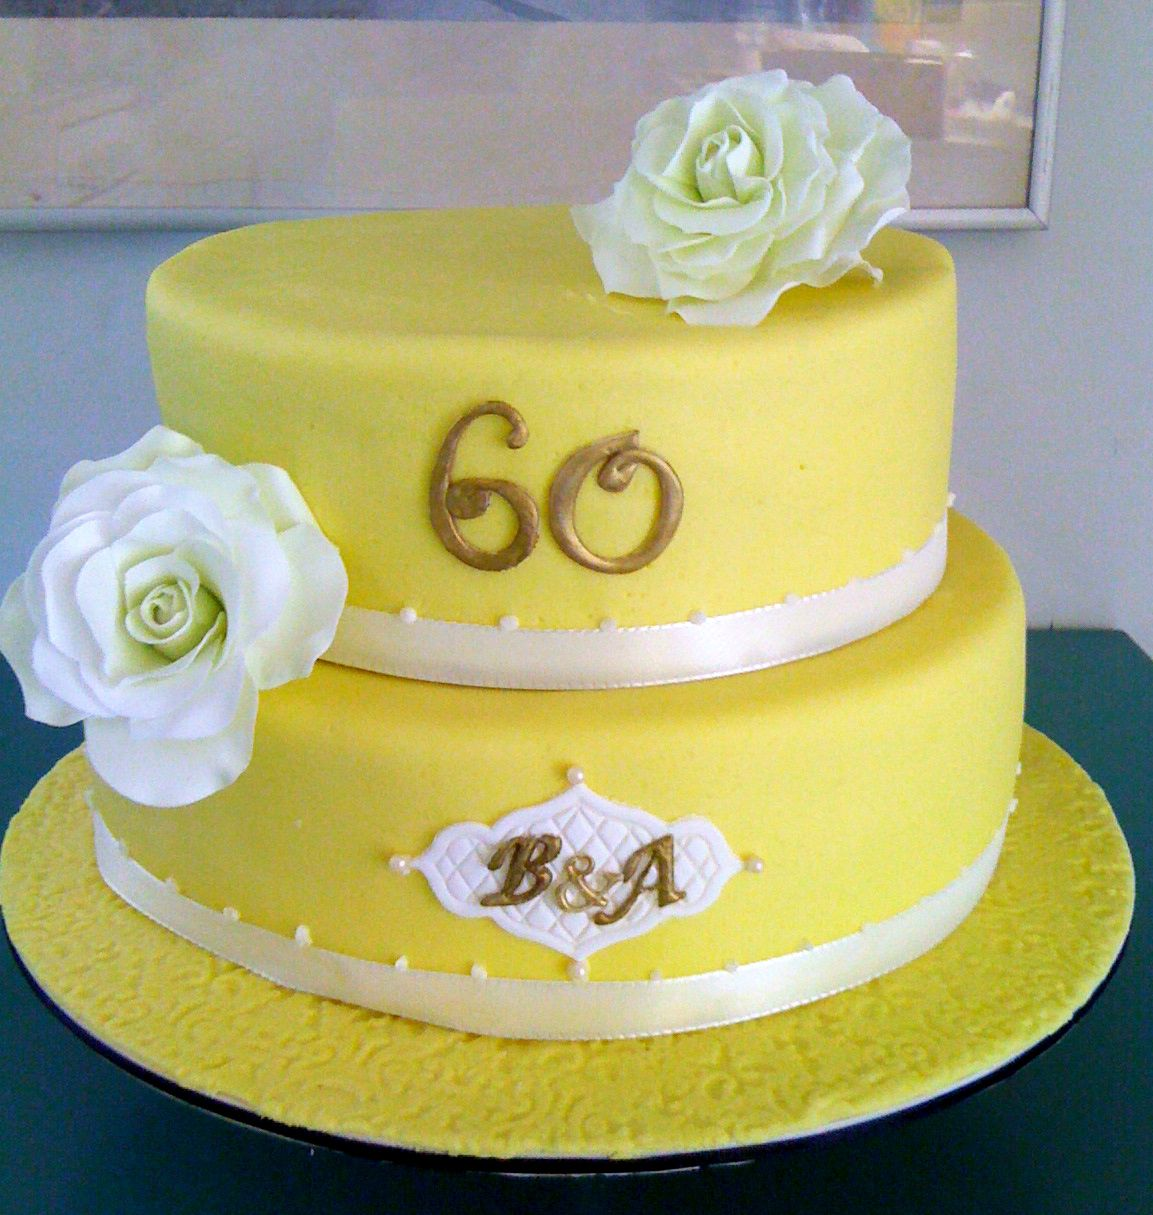 60th anniversary cake torte zum 60 hochzeitstag cakes by me pinterest torten. Black Bedroom Furniture Sets. Home Design Ideas